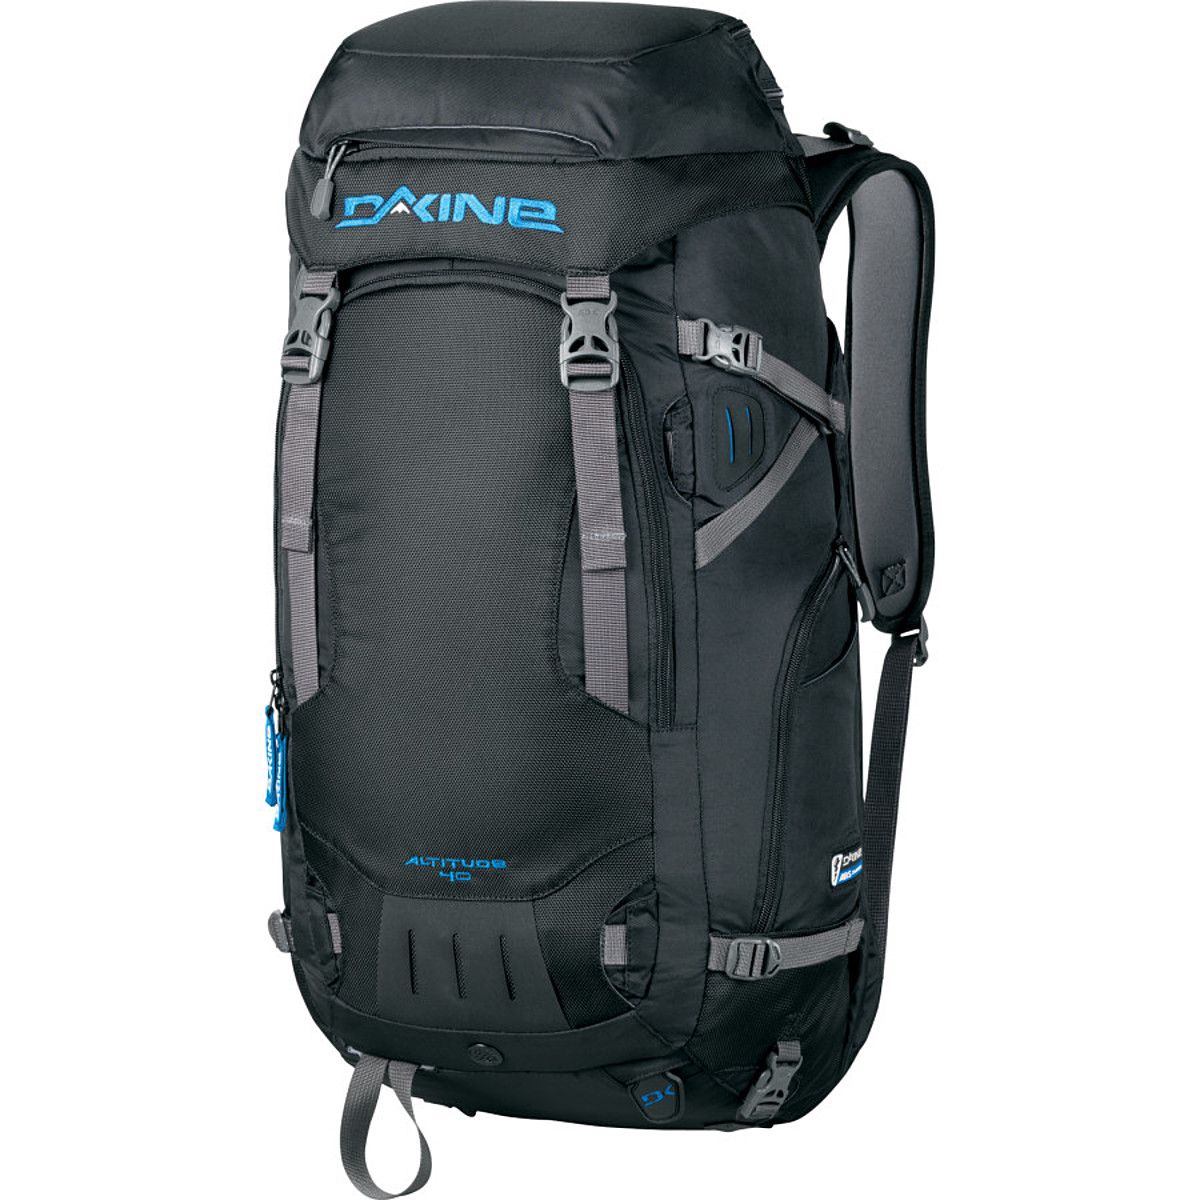 DaKine Altitude ABS 40L Backpack